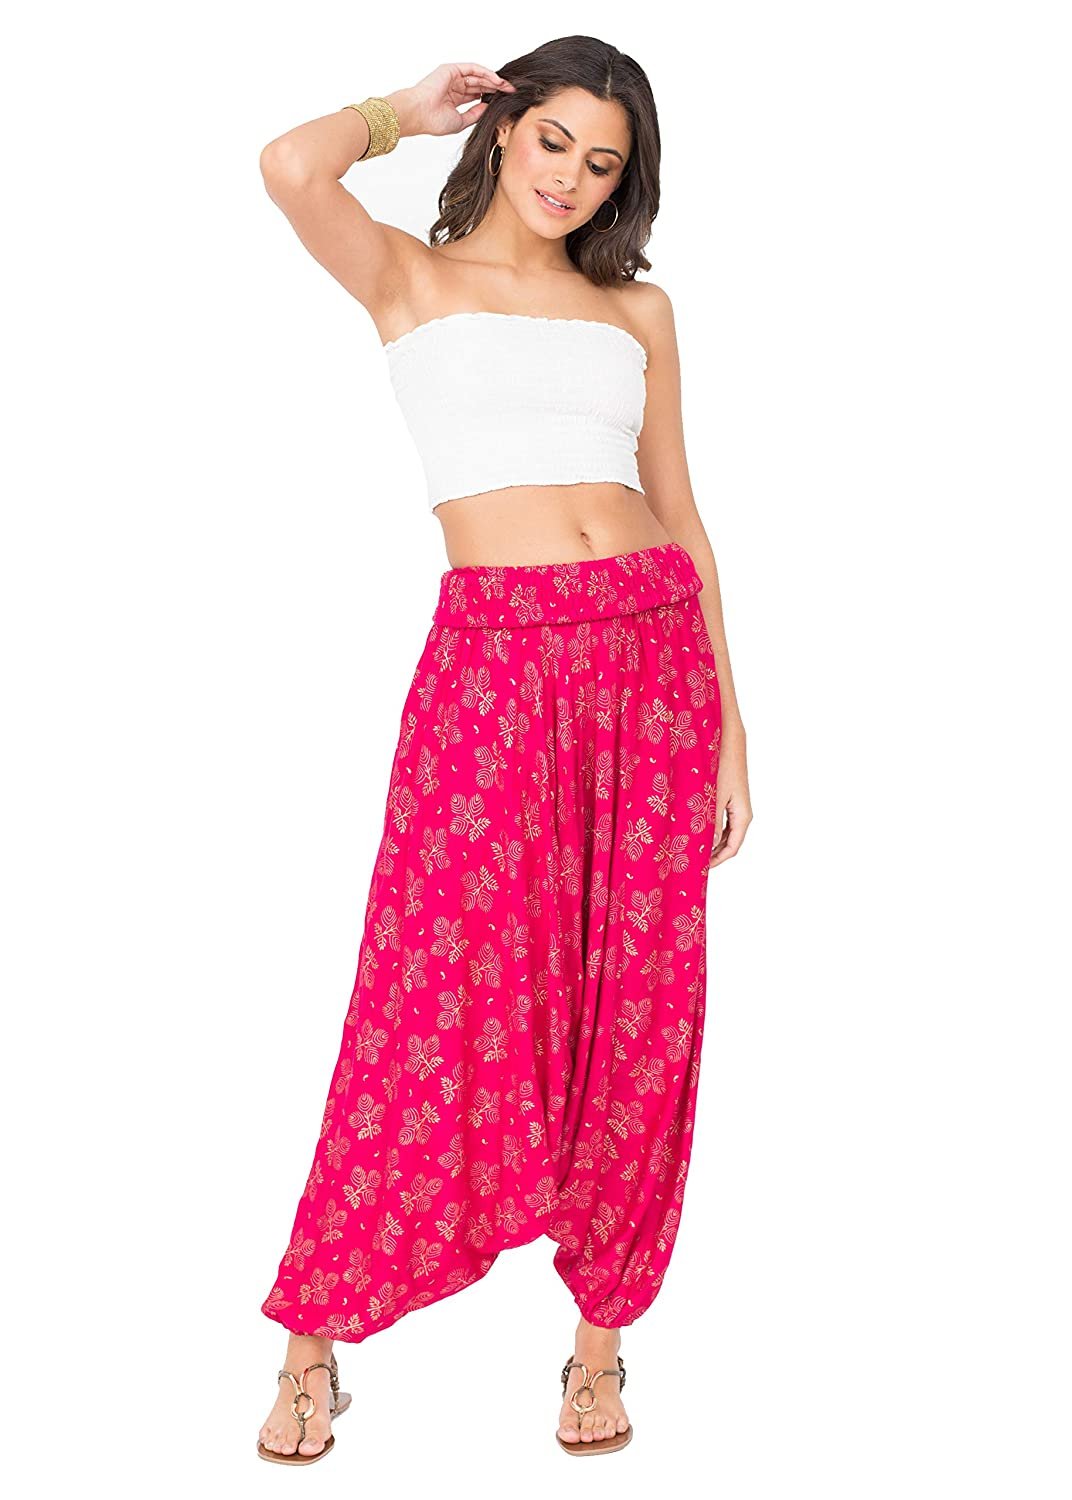 likemary Harem Genie Pants and Hareem Bandeau Jumpsuit Convertible 2 in 1 Romper for Women